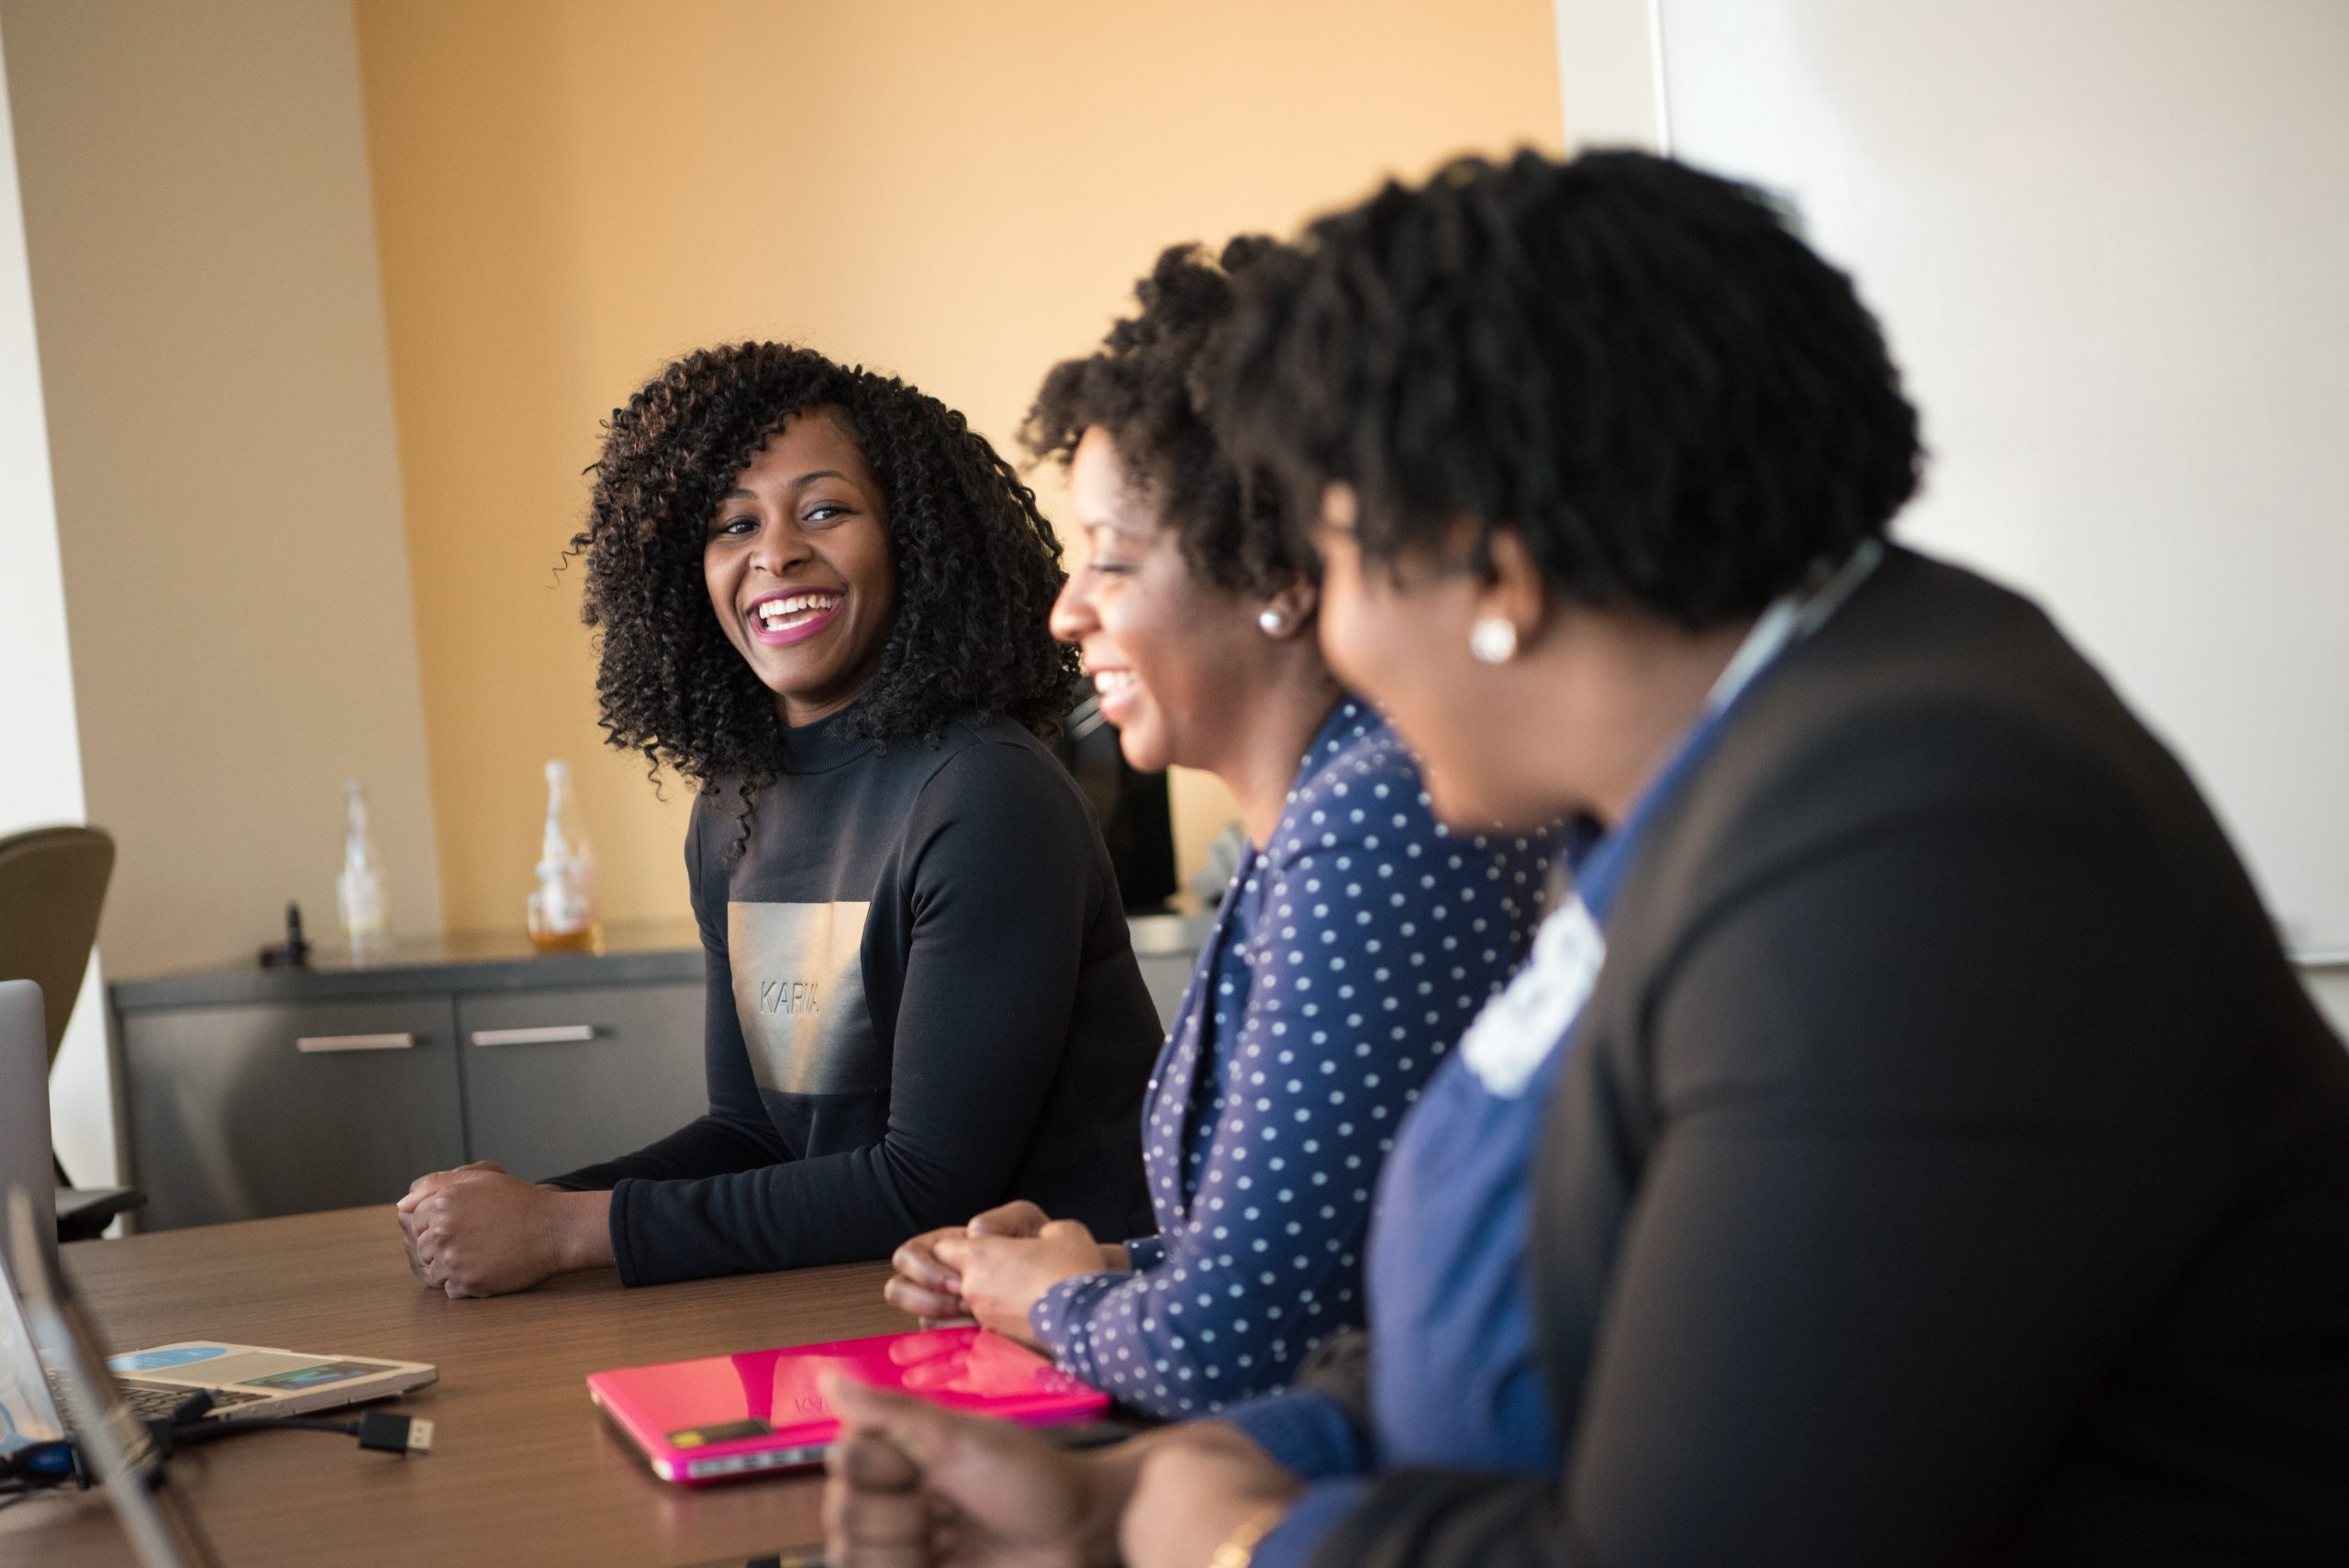 Black co-workers women laughing with each other